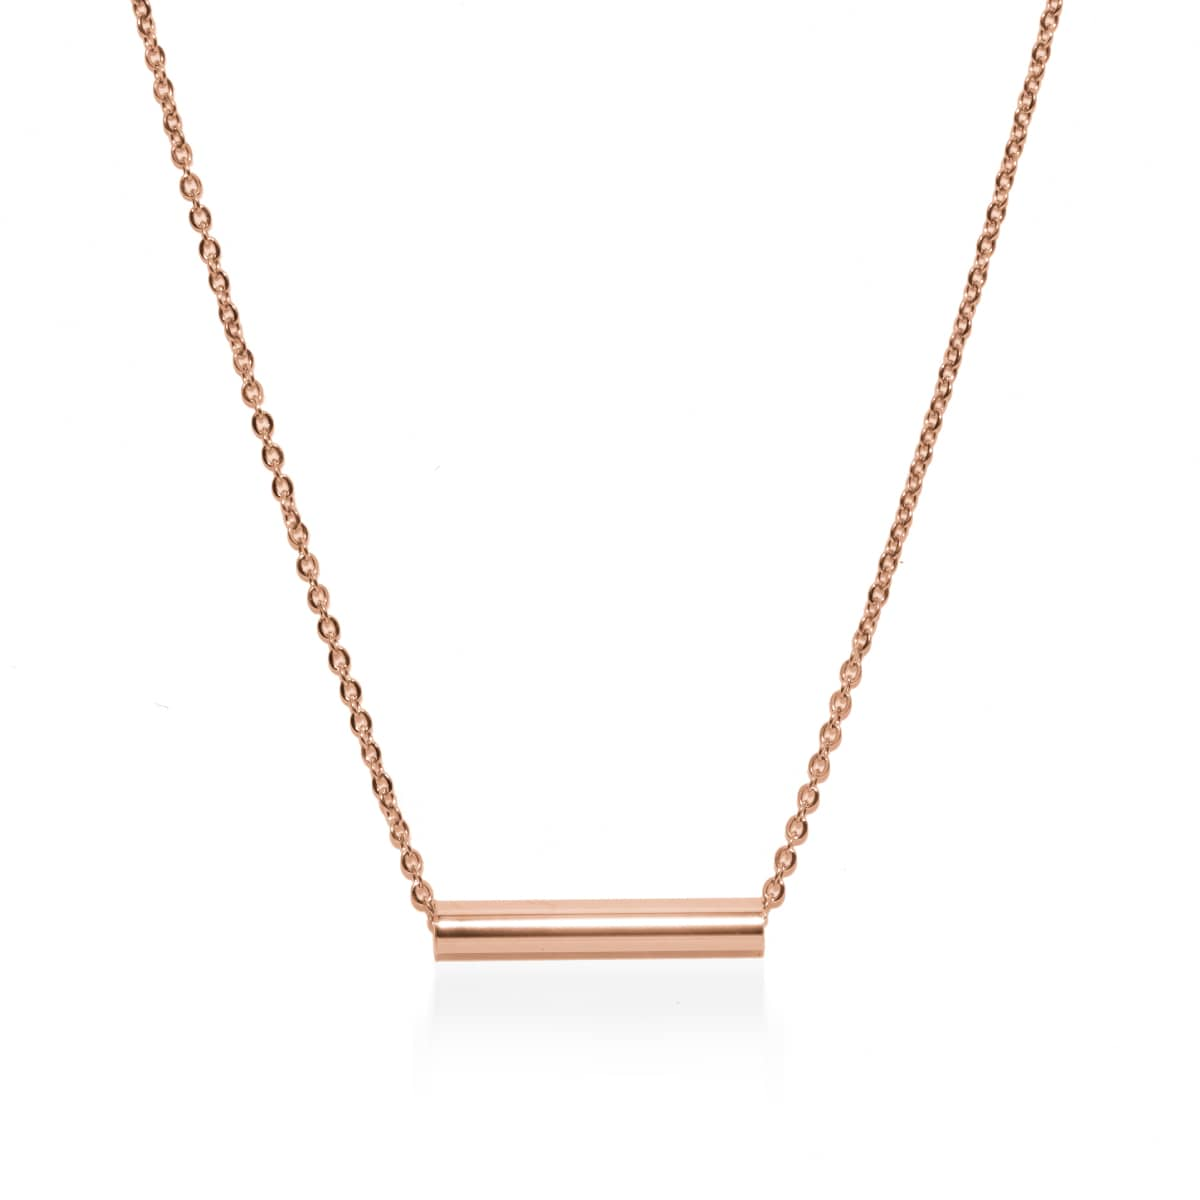 Minimaliste | Or rose 18 carats | Collier